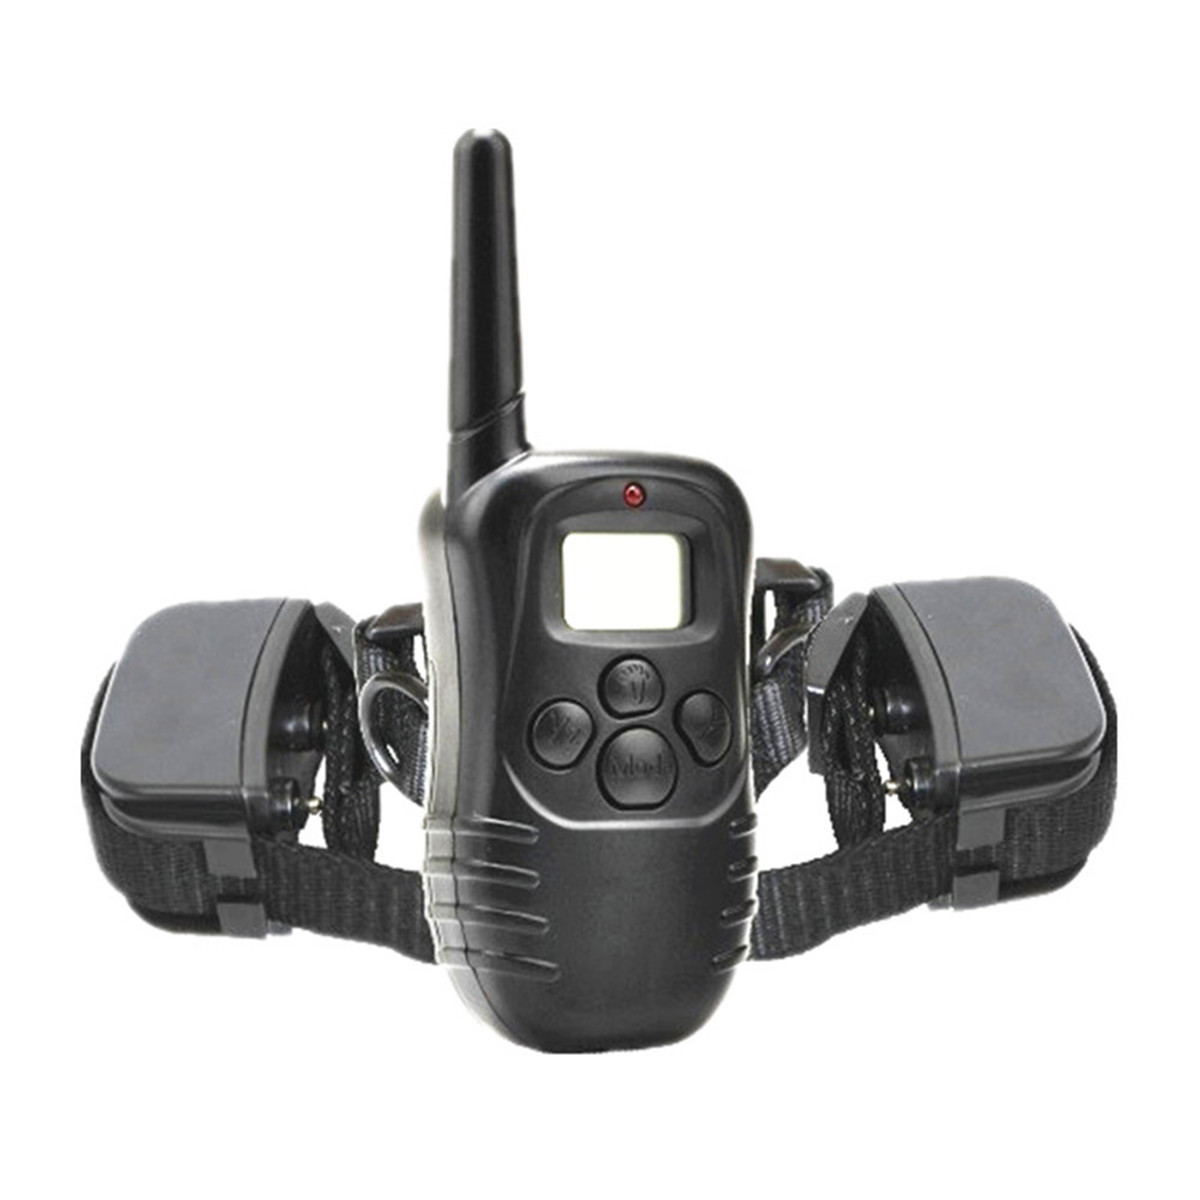 Rechargeable Waterproof 330yd Remote Electronic Dog